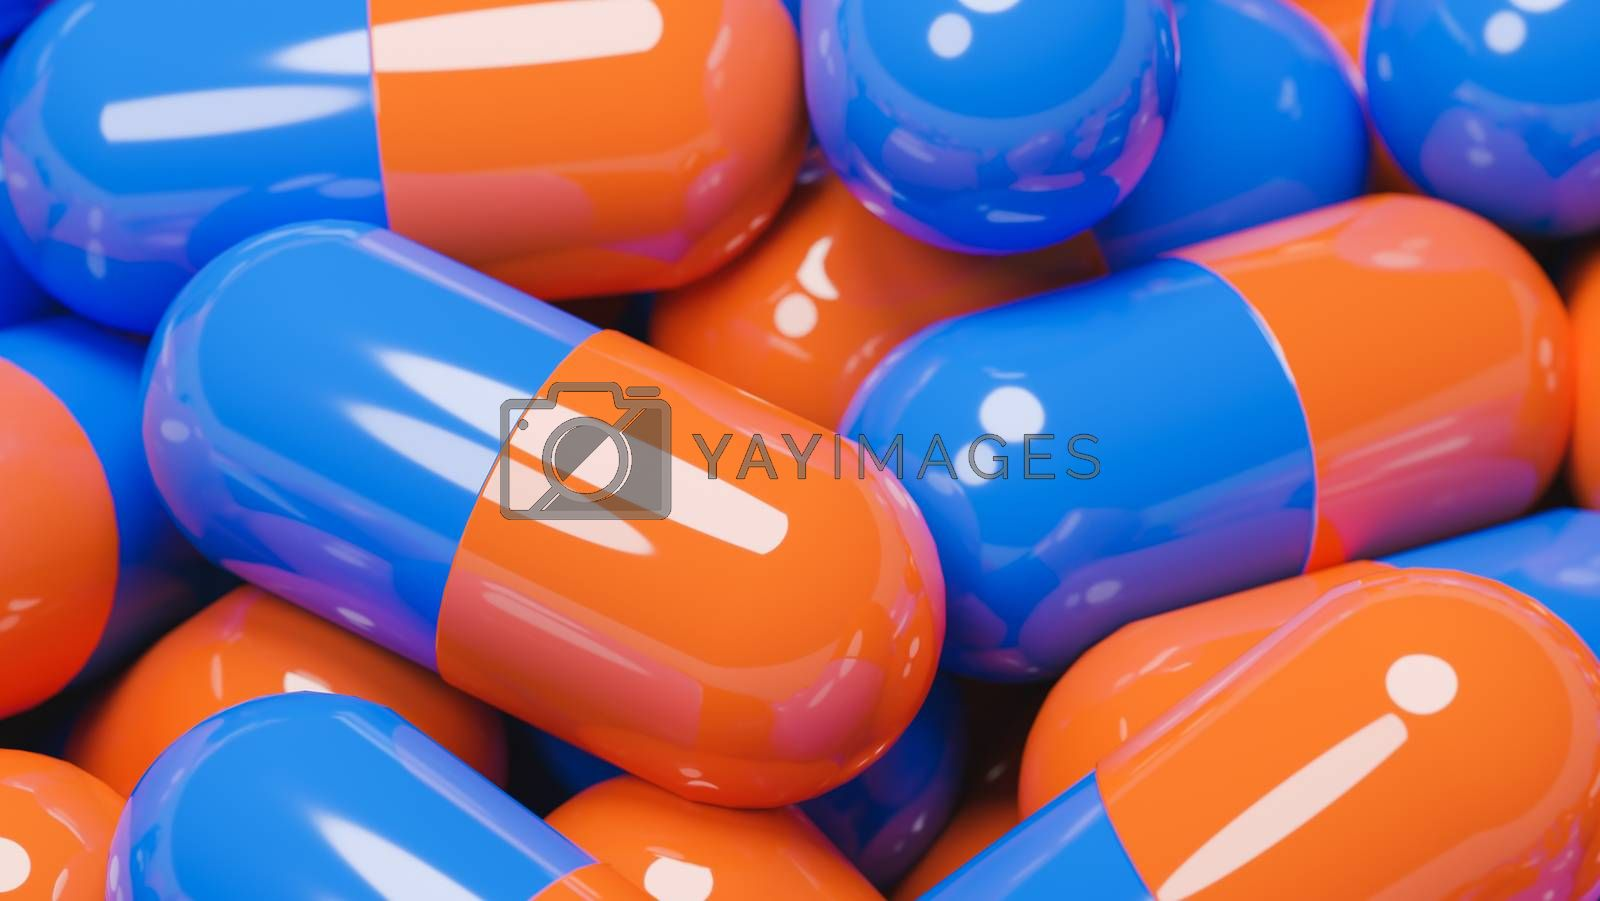 Close up of many orange and blue pills capsules. Medicine and pharmacy concept.,3d model and illustration.